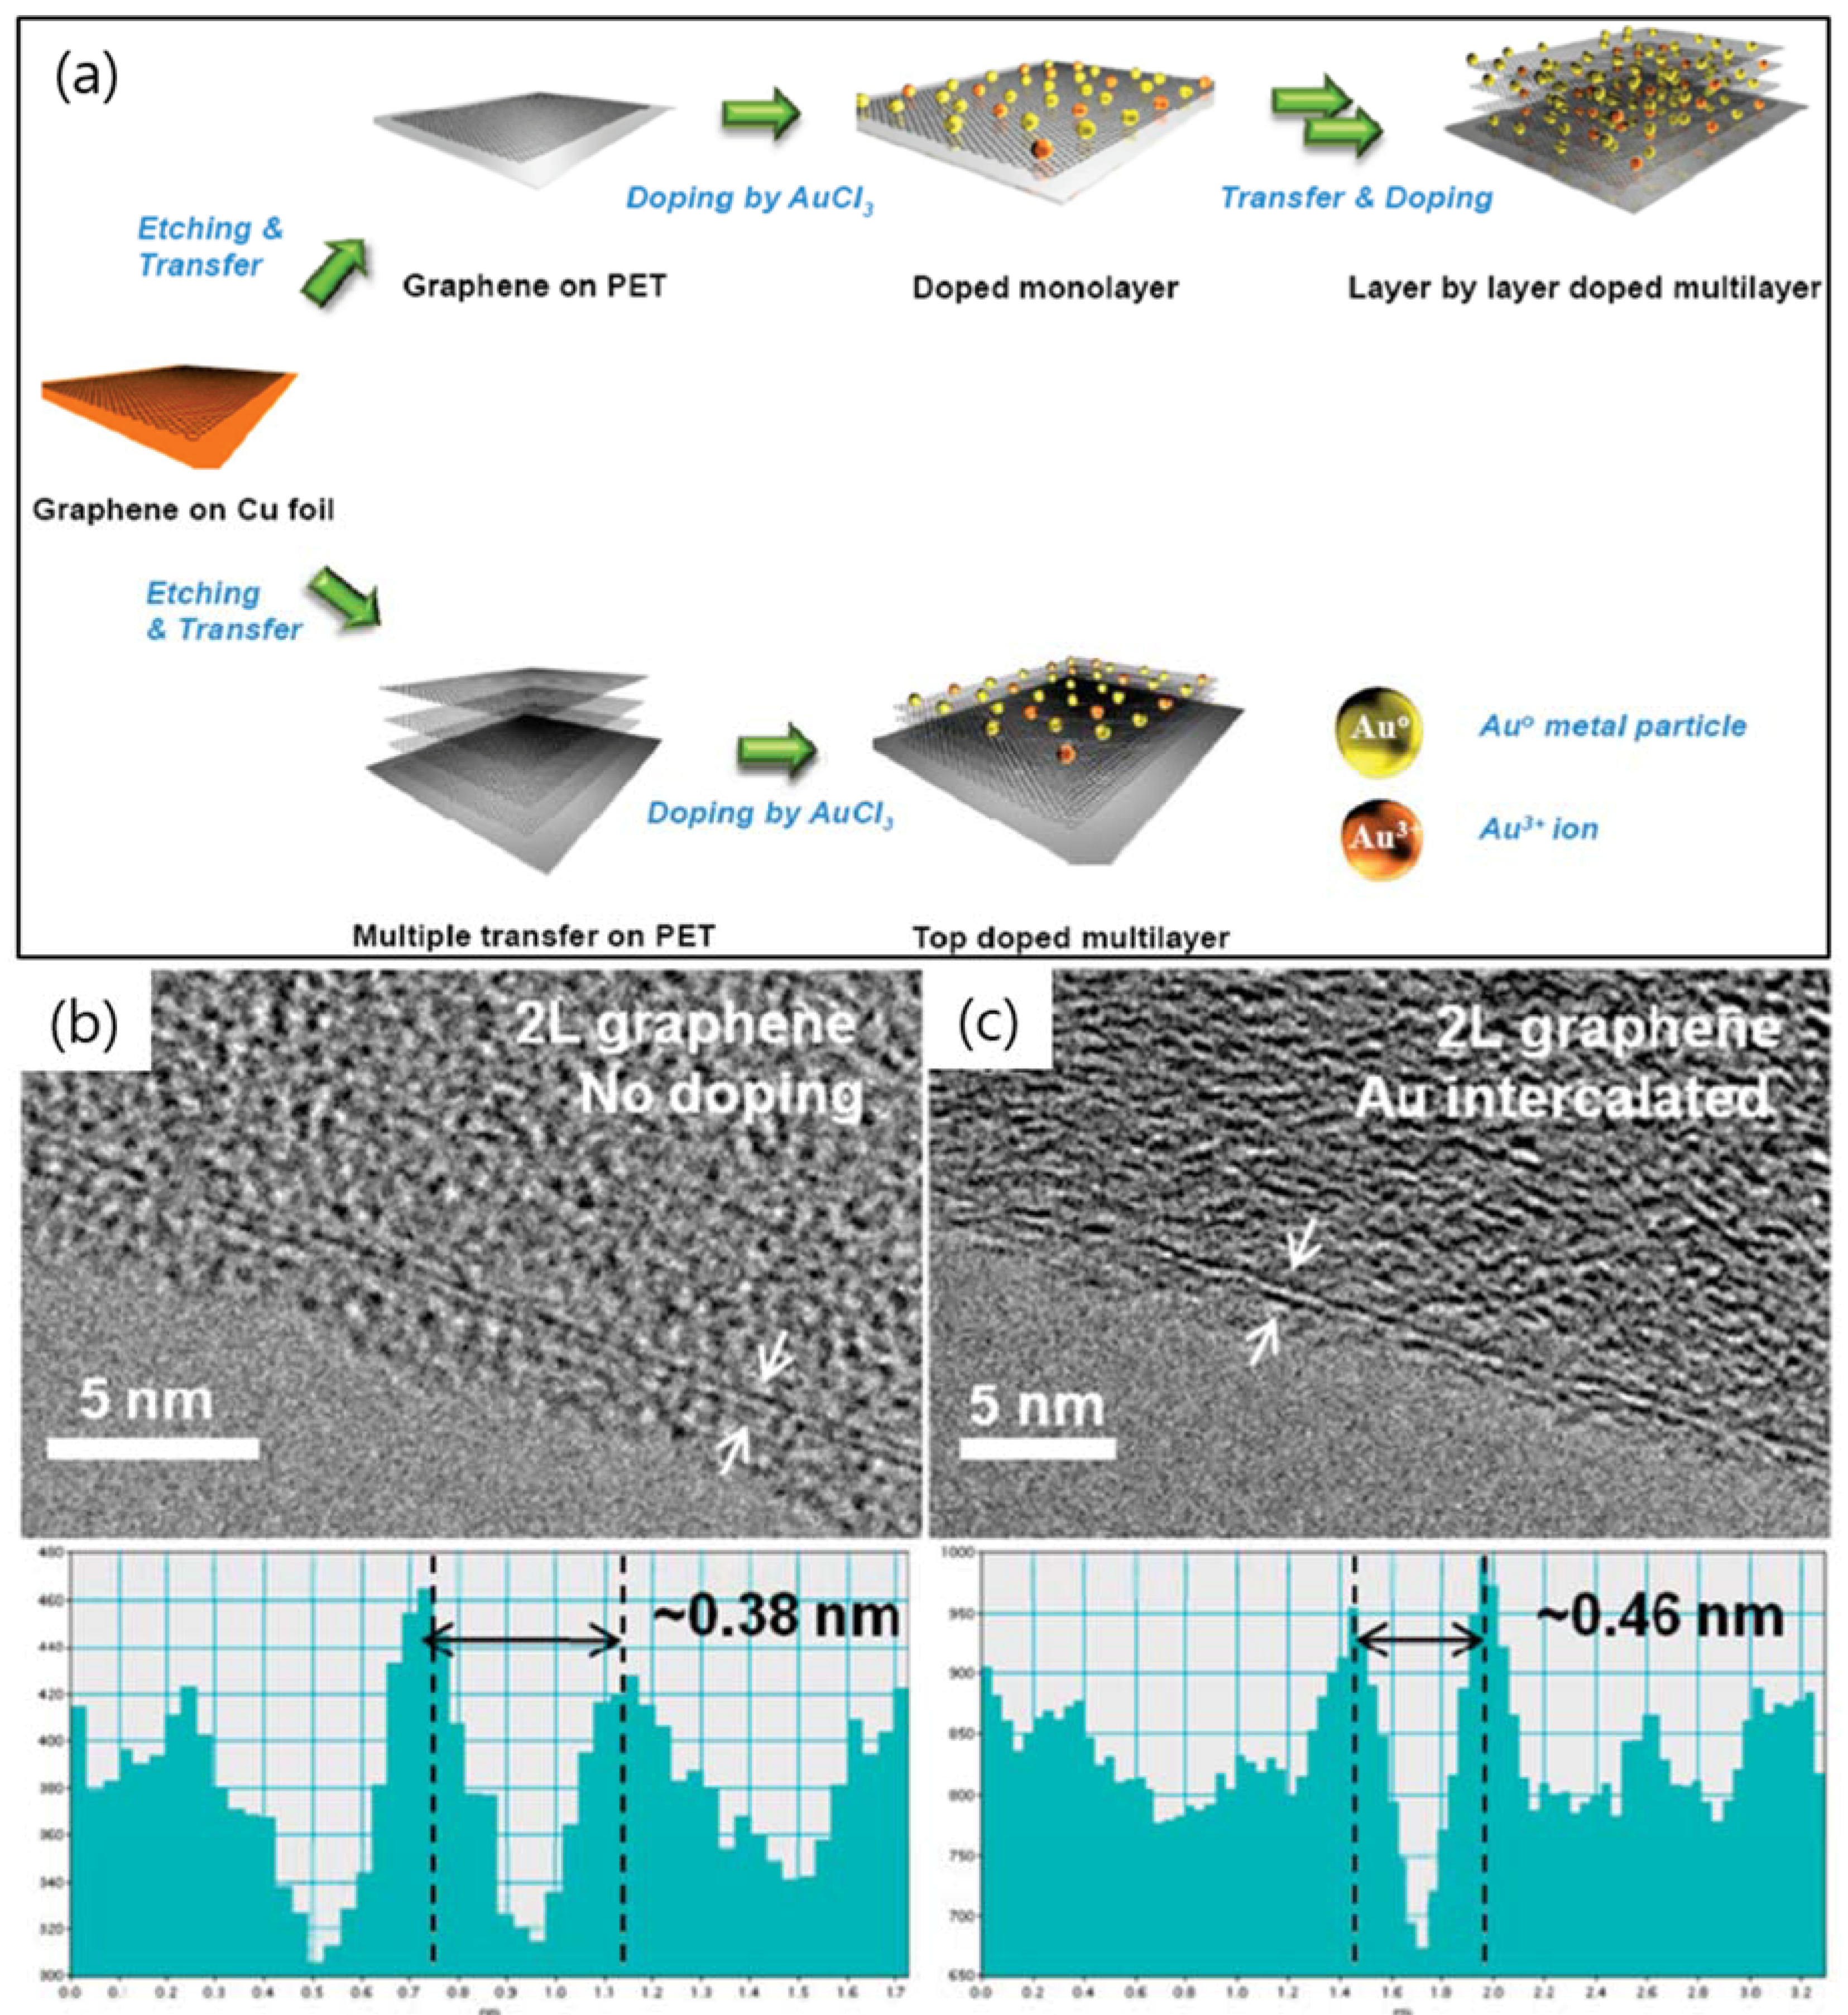 Graphene Bands: A Library Of Doped-Graphene Images